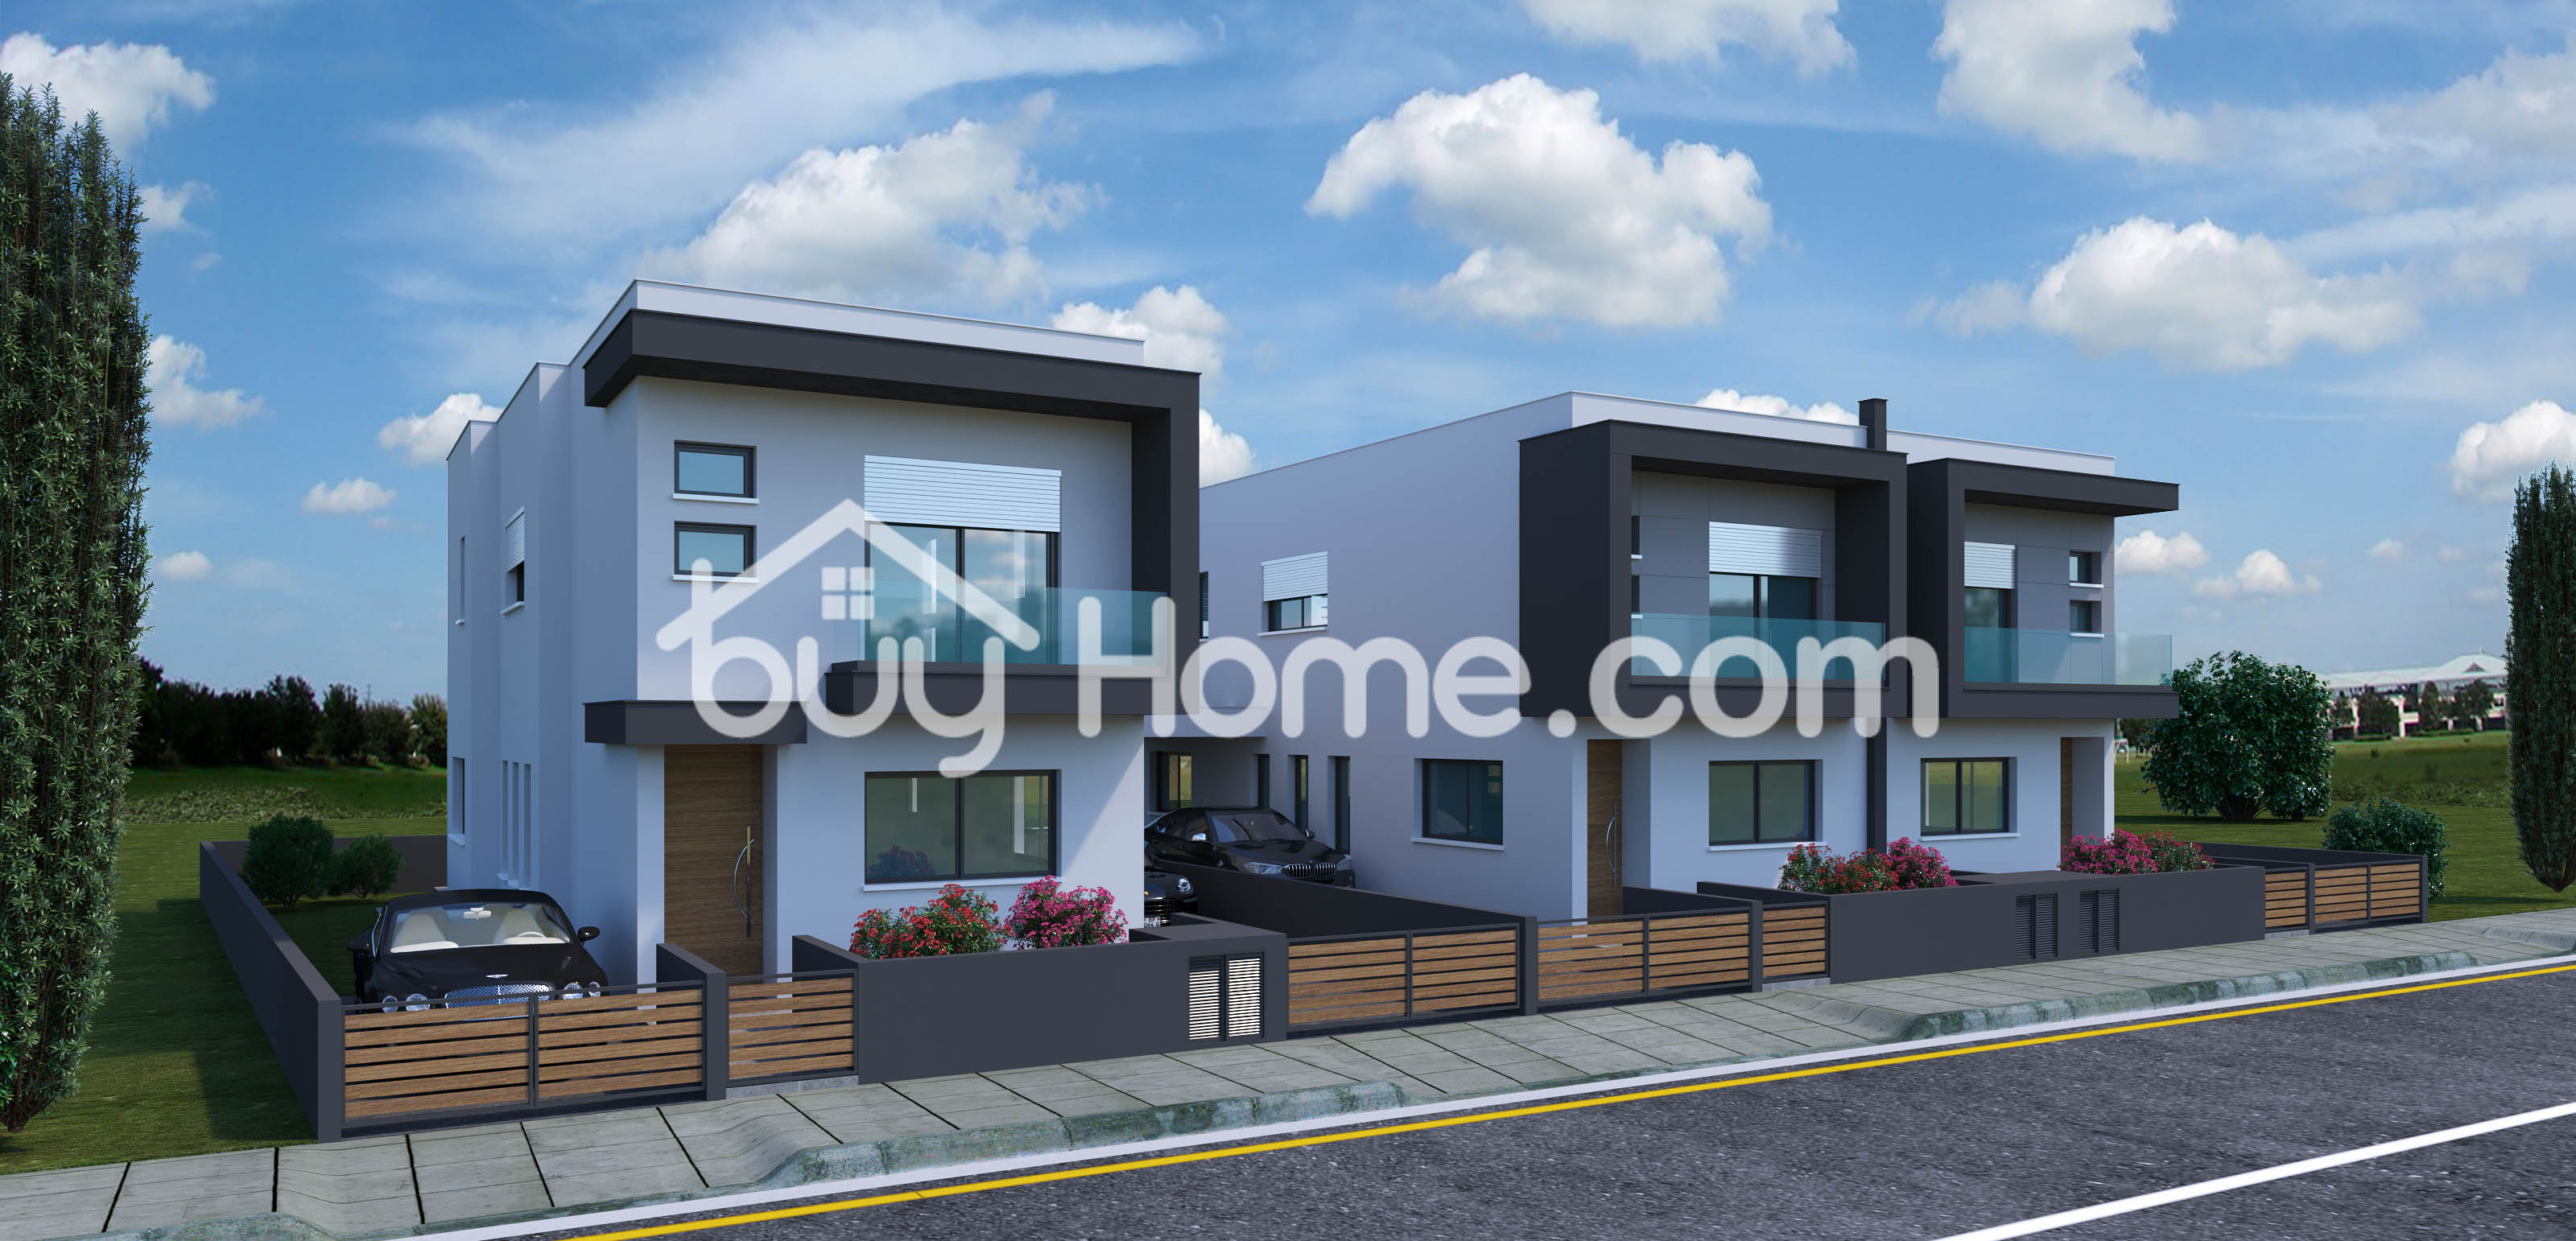 3 BDR Semi-Detached House | BuyHome